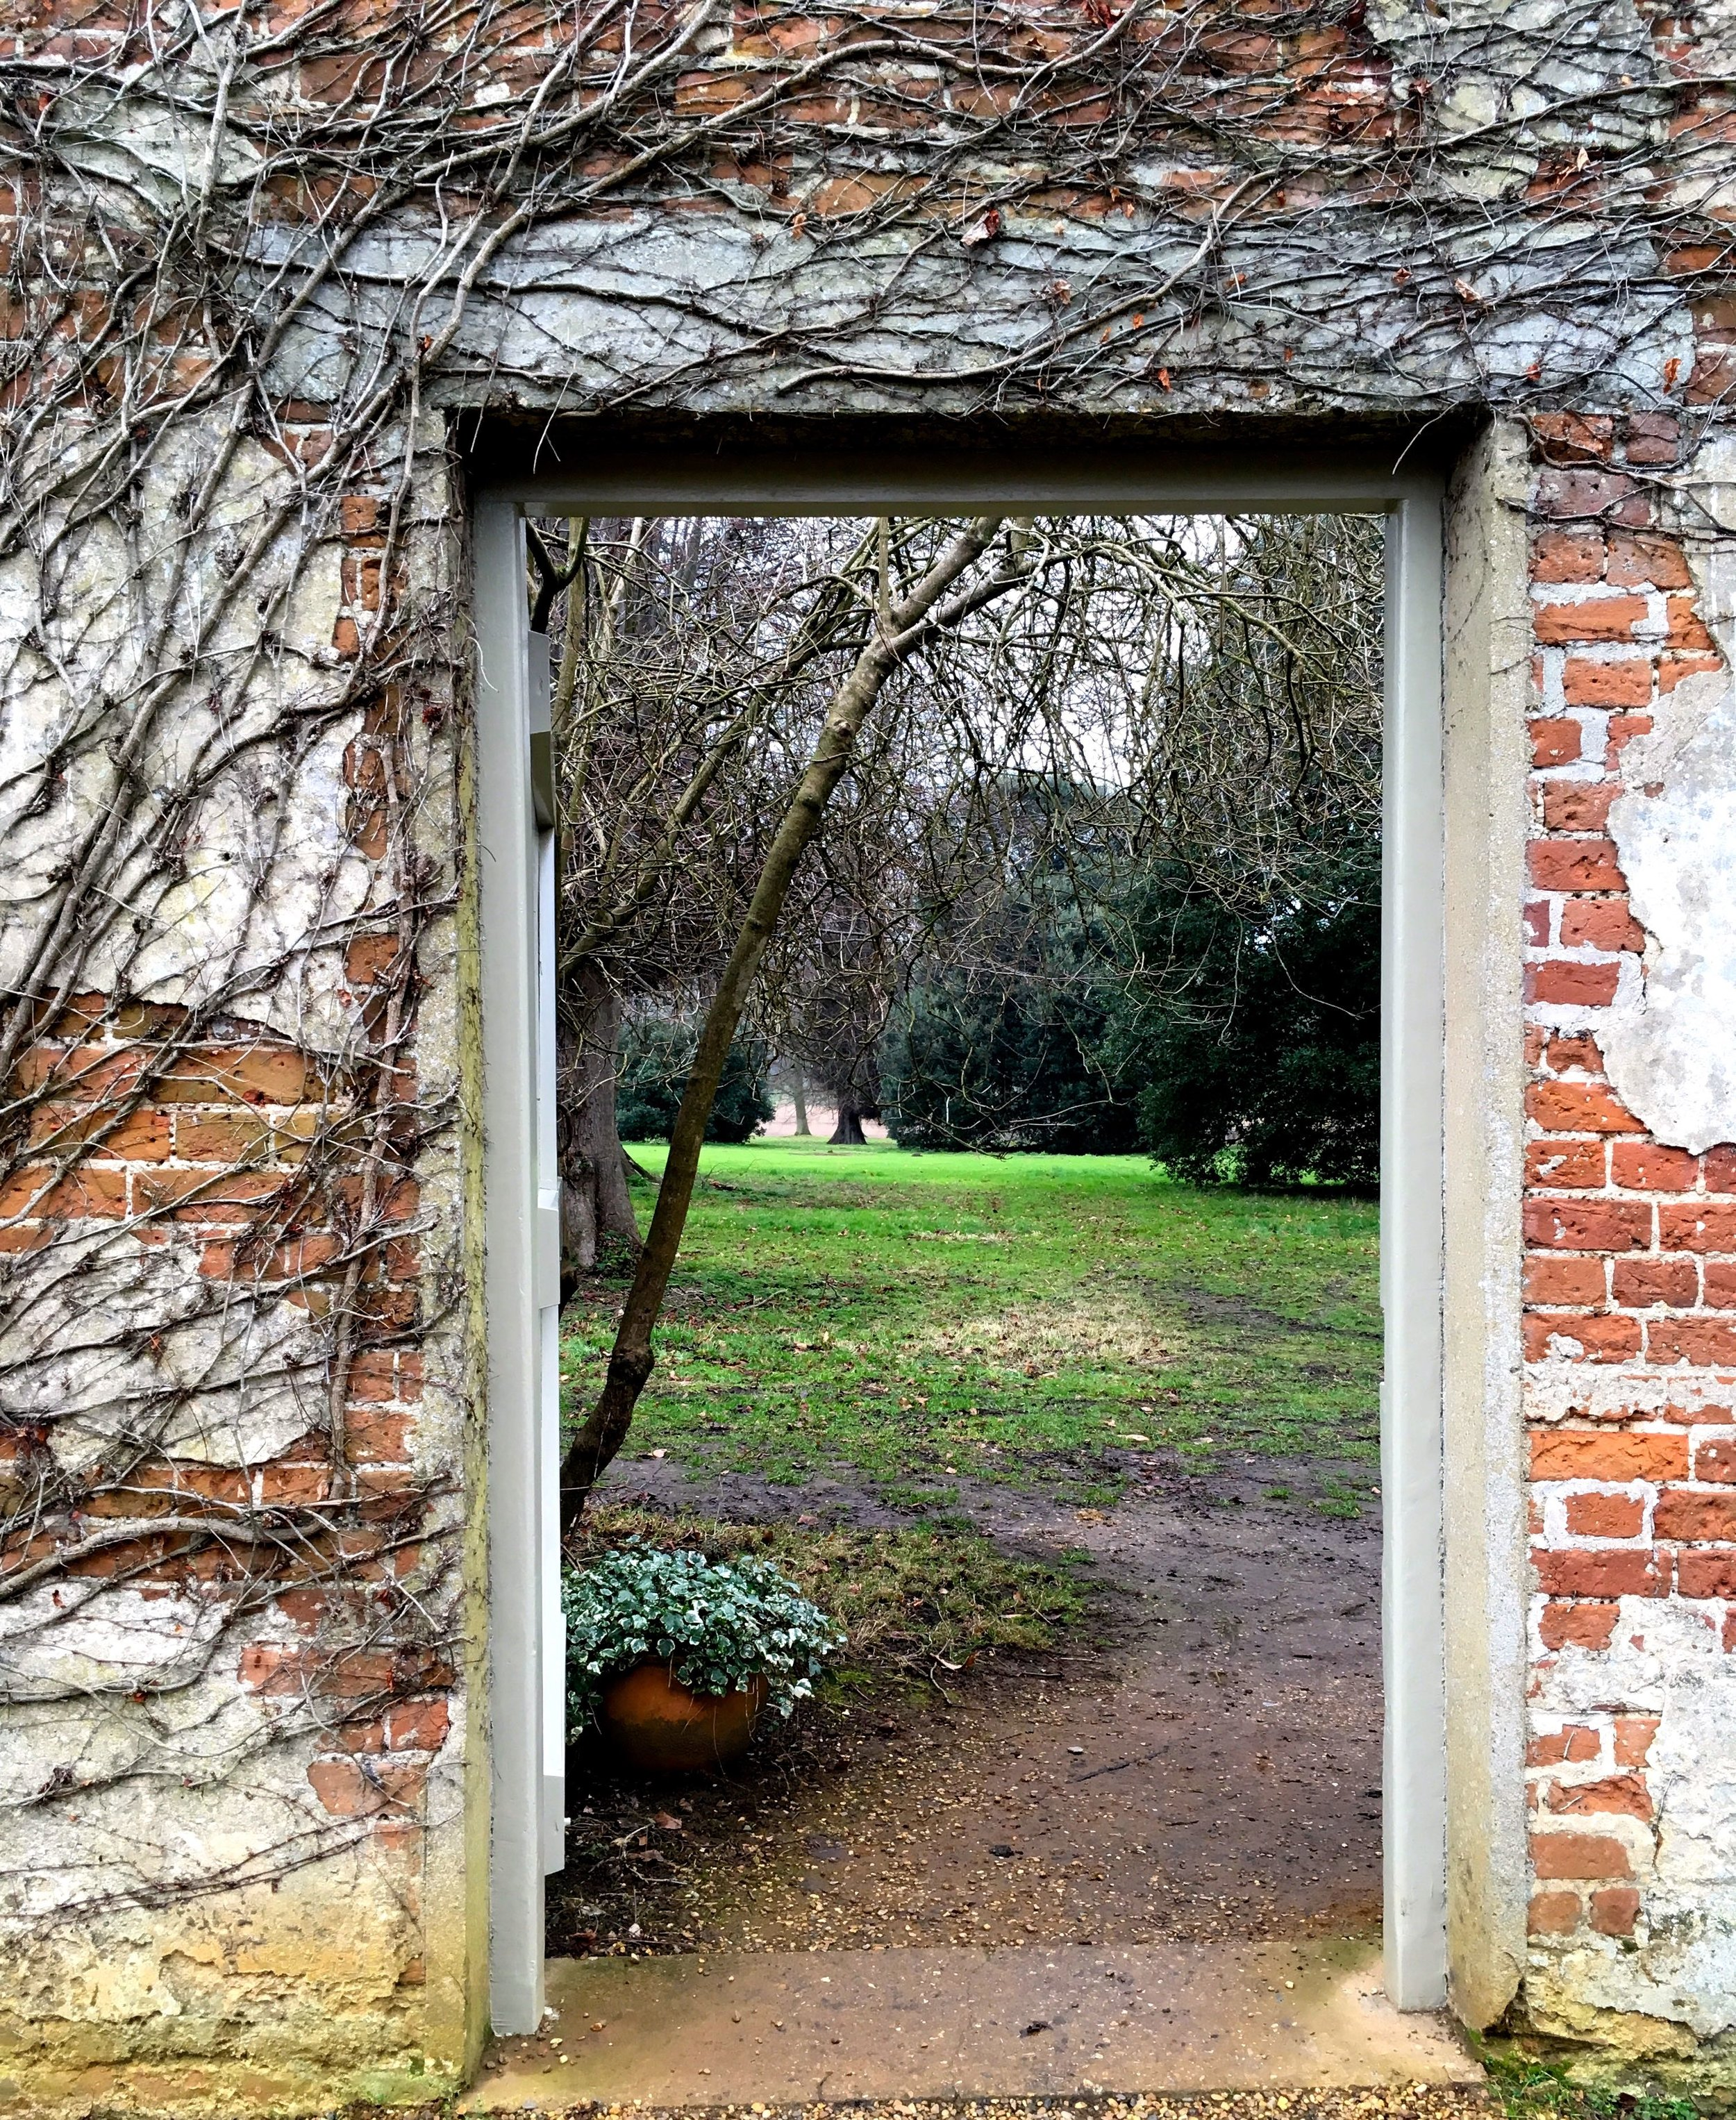 Looking through the gate at the Kitchen Garden on the Blickling Estate in Norfolk